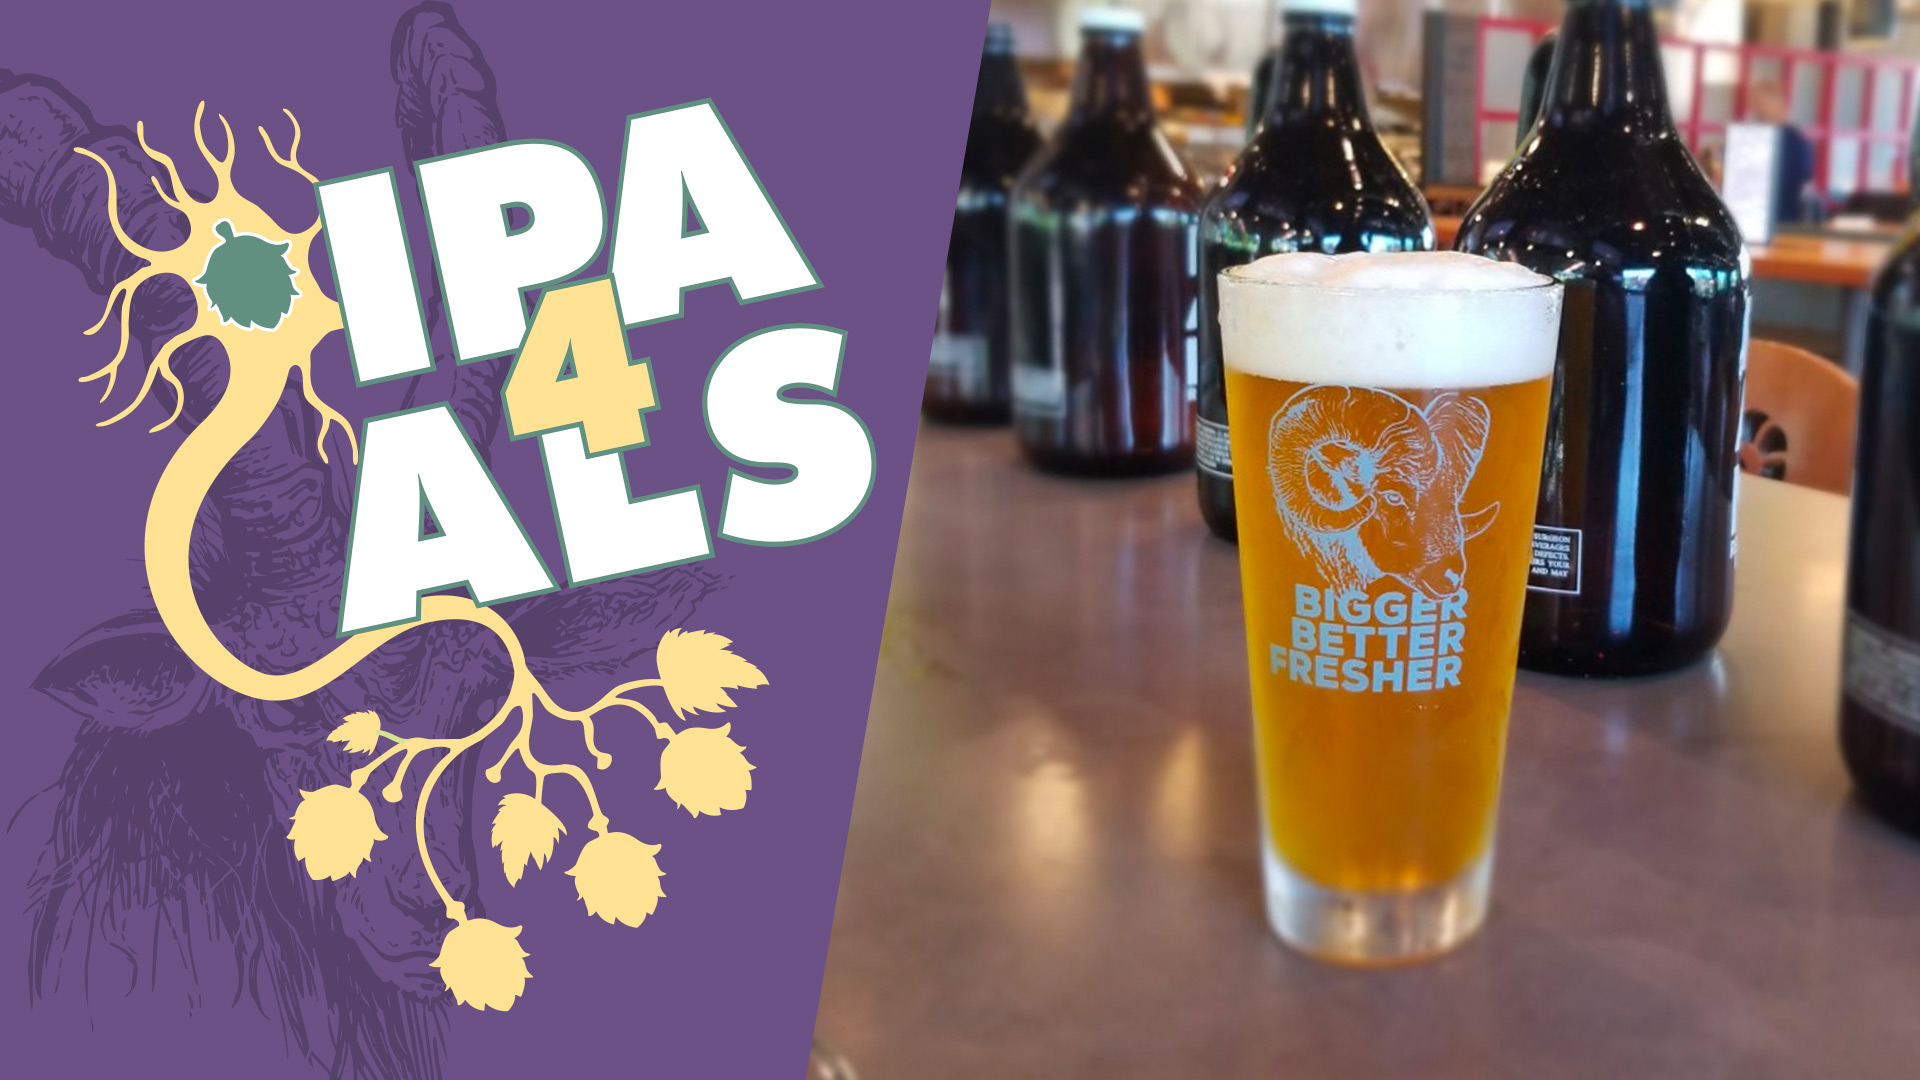 picture of pint of beer and IPA 4 ALS logo